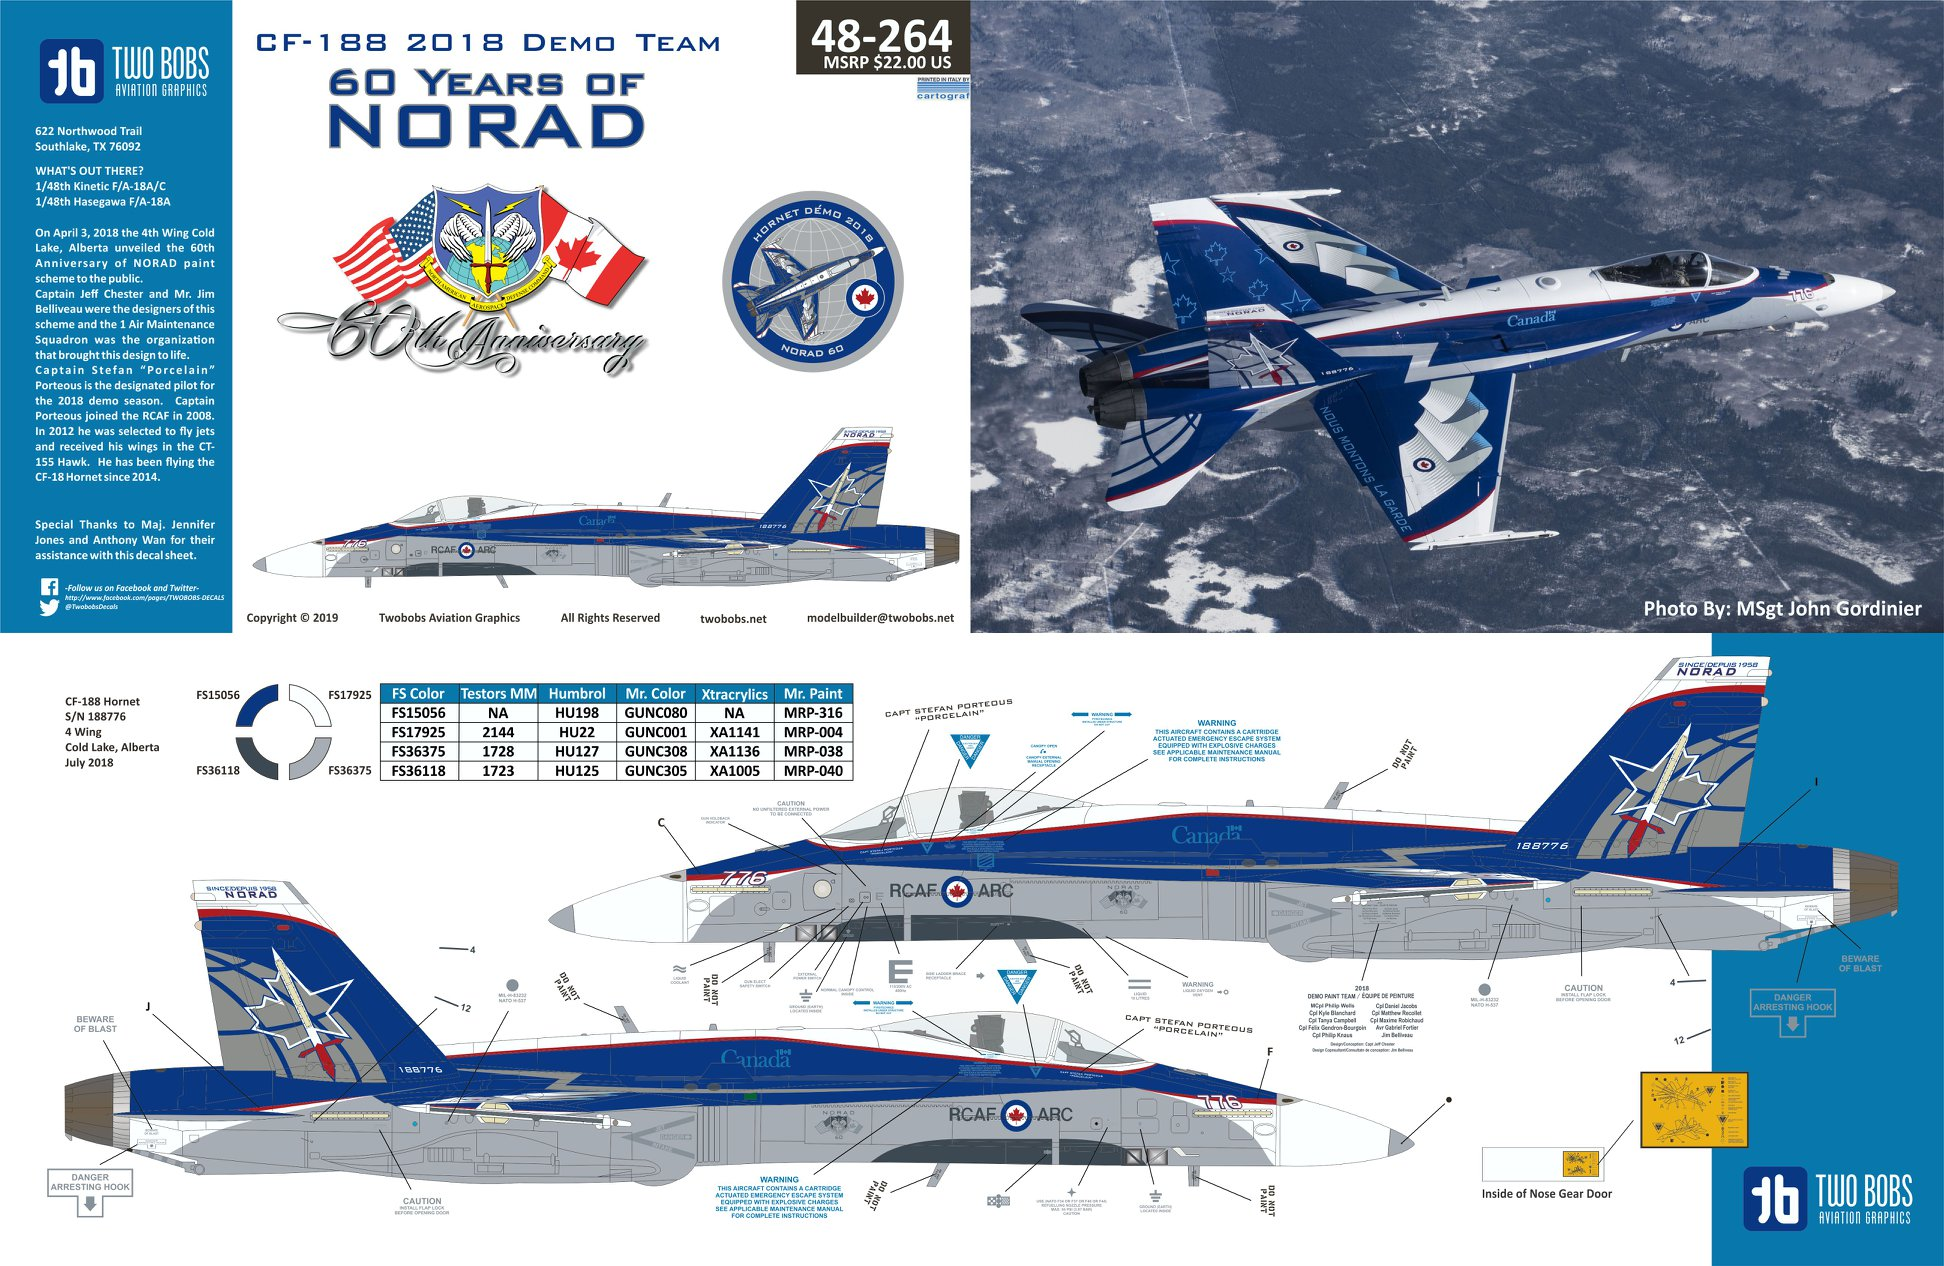 48-264 CF-188 RCAF 60 Years of NORAD.jpg